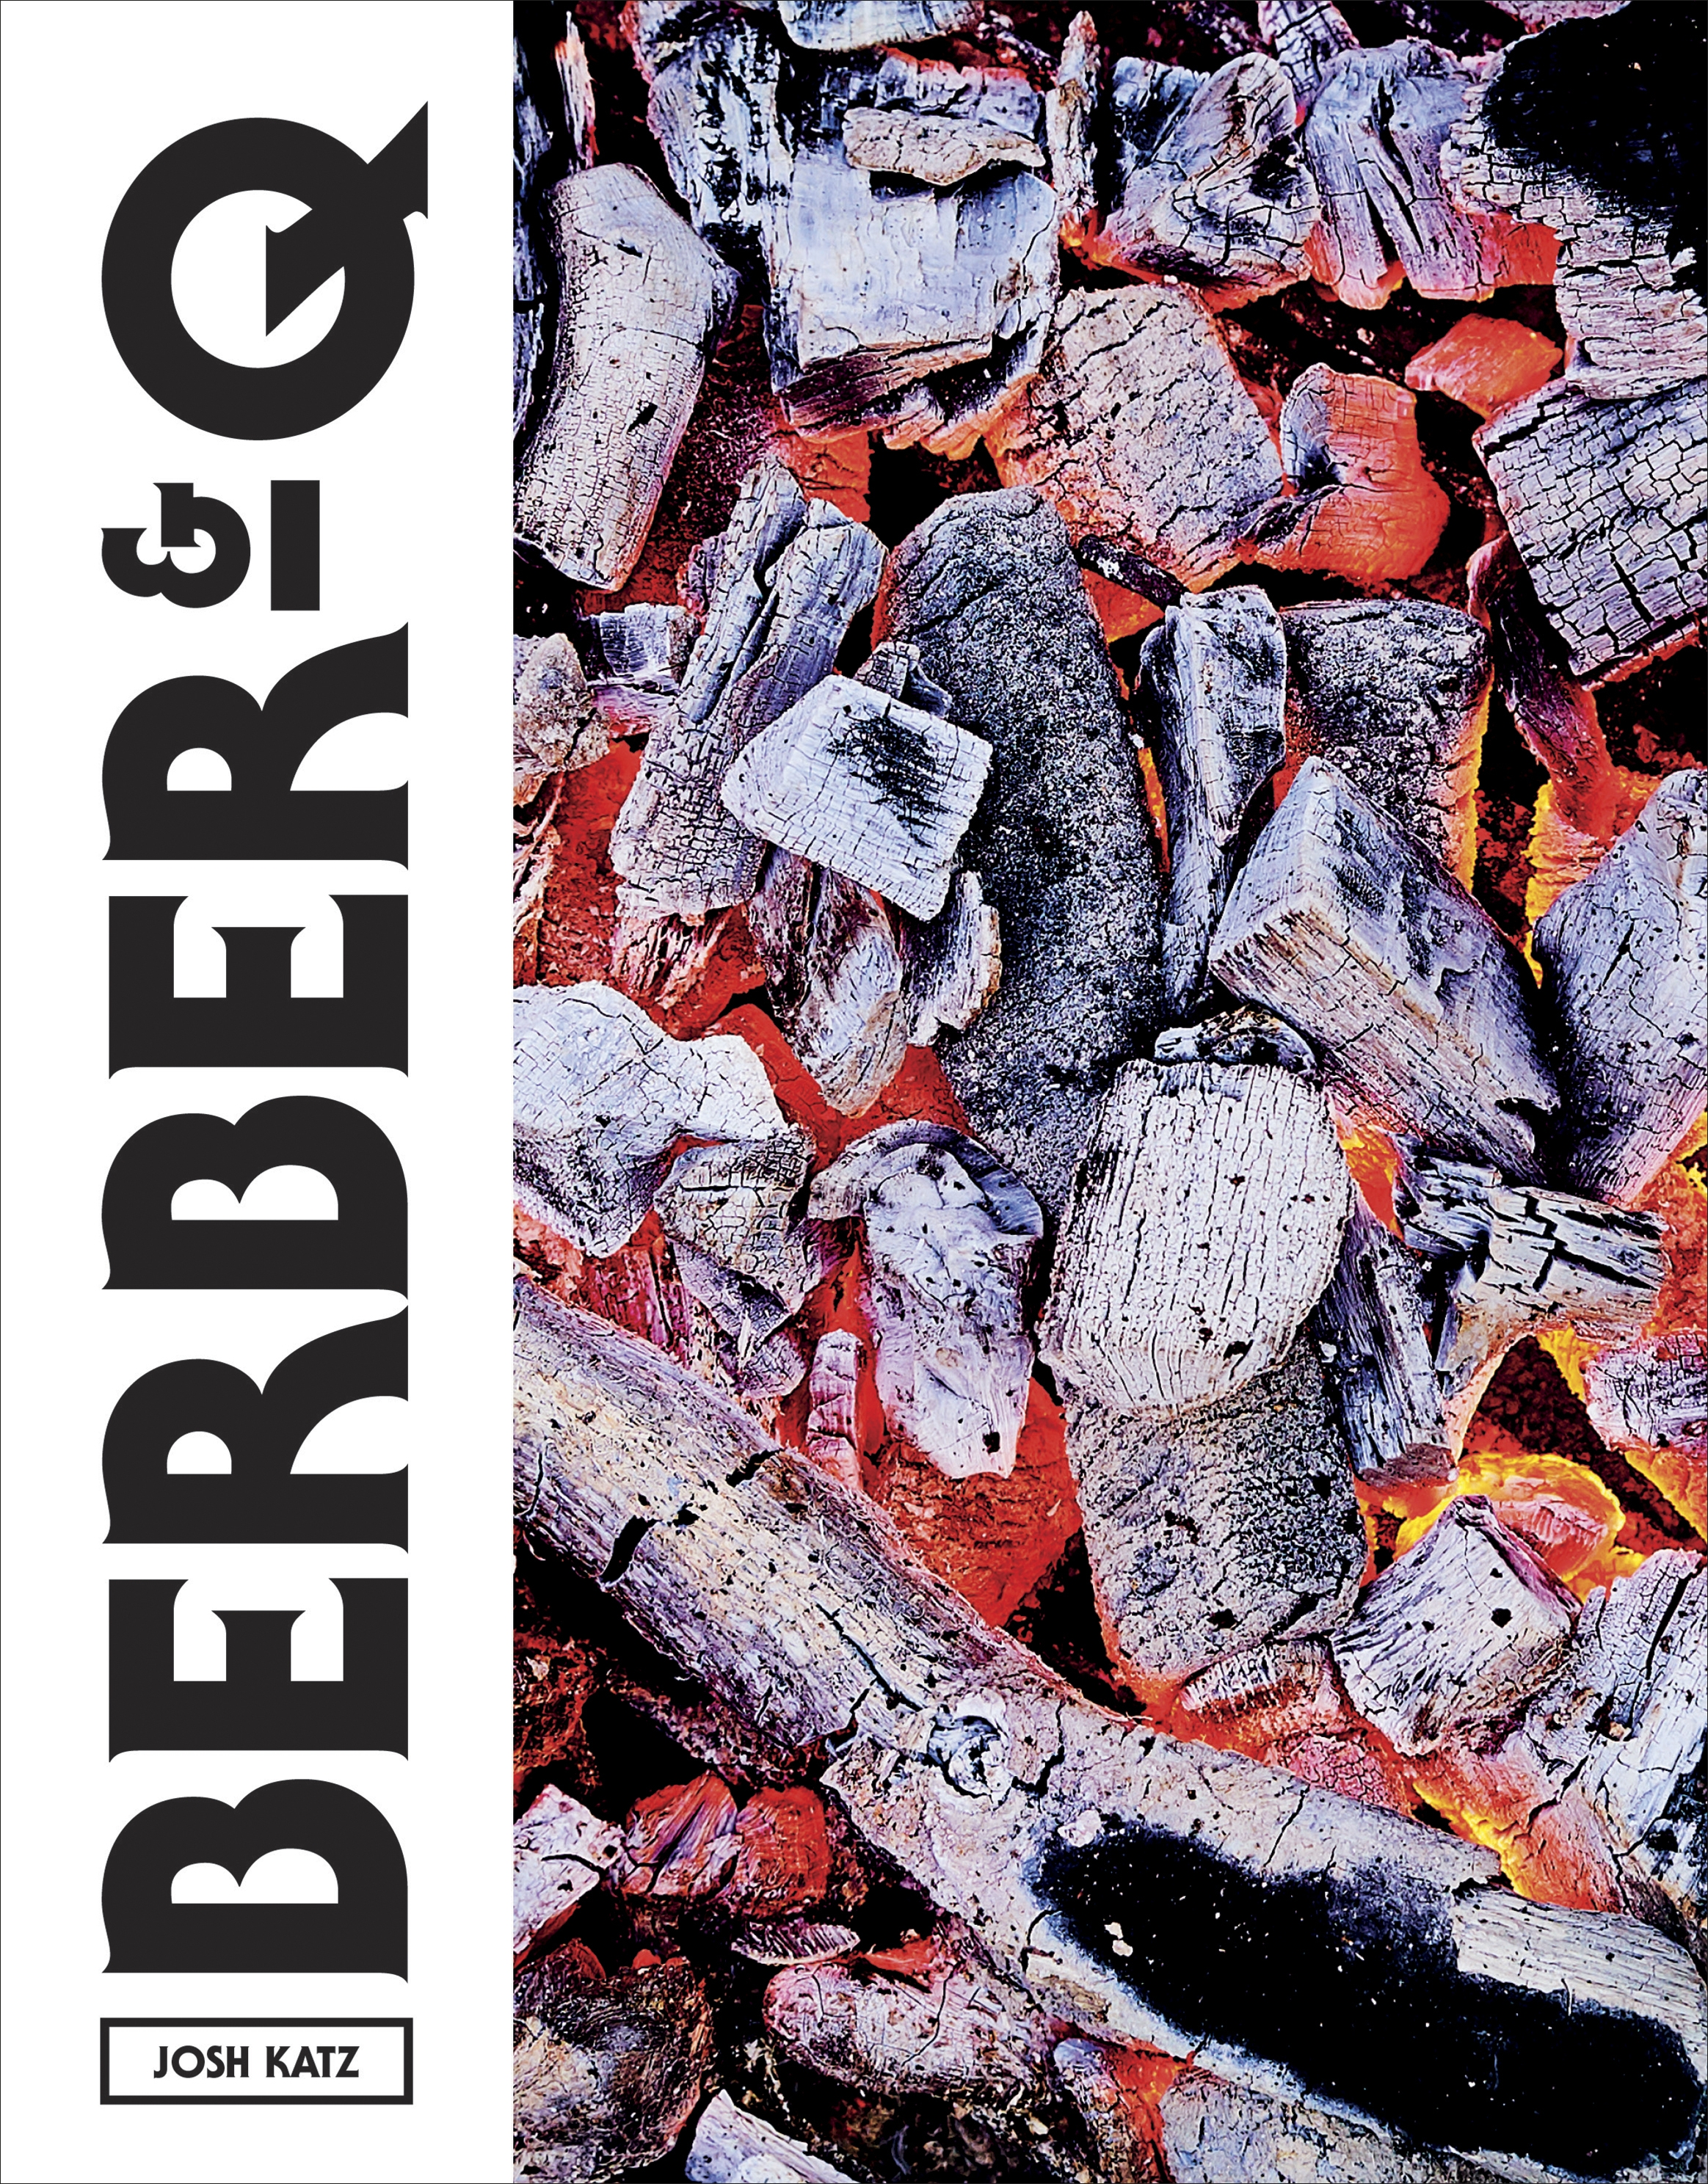 Berber & Q by Josh Katz, ISBN: 9781785035289